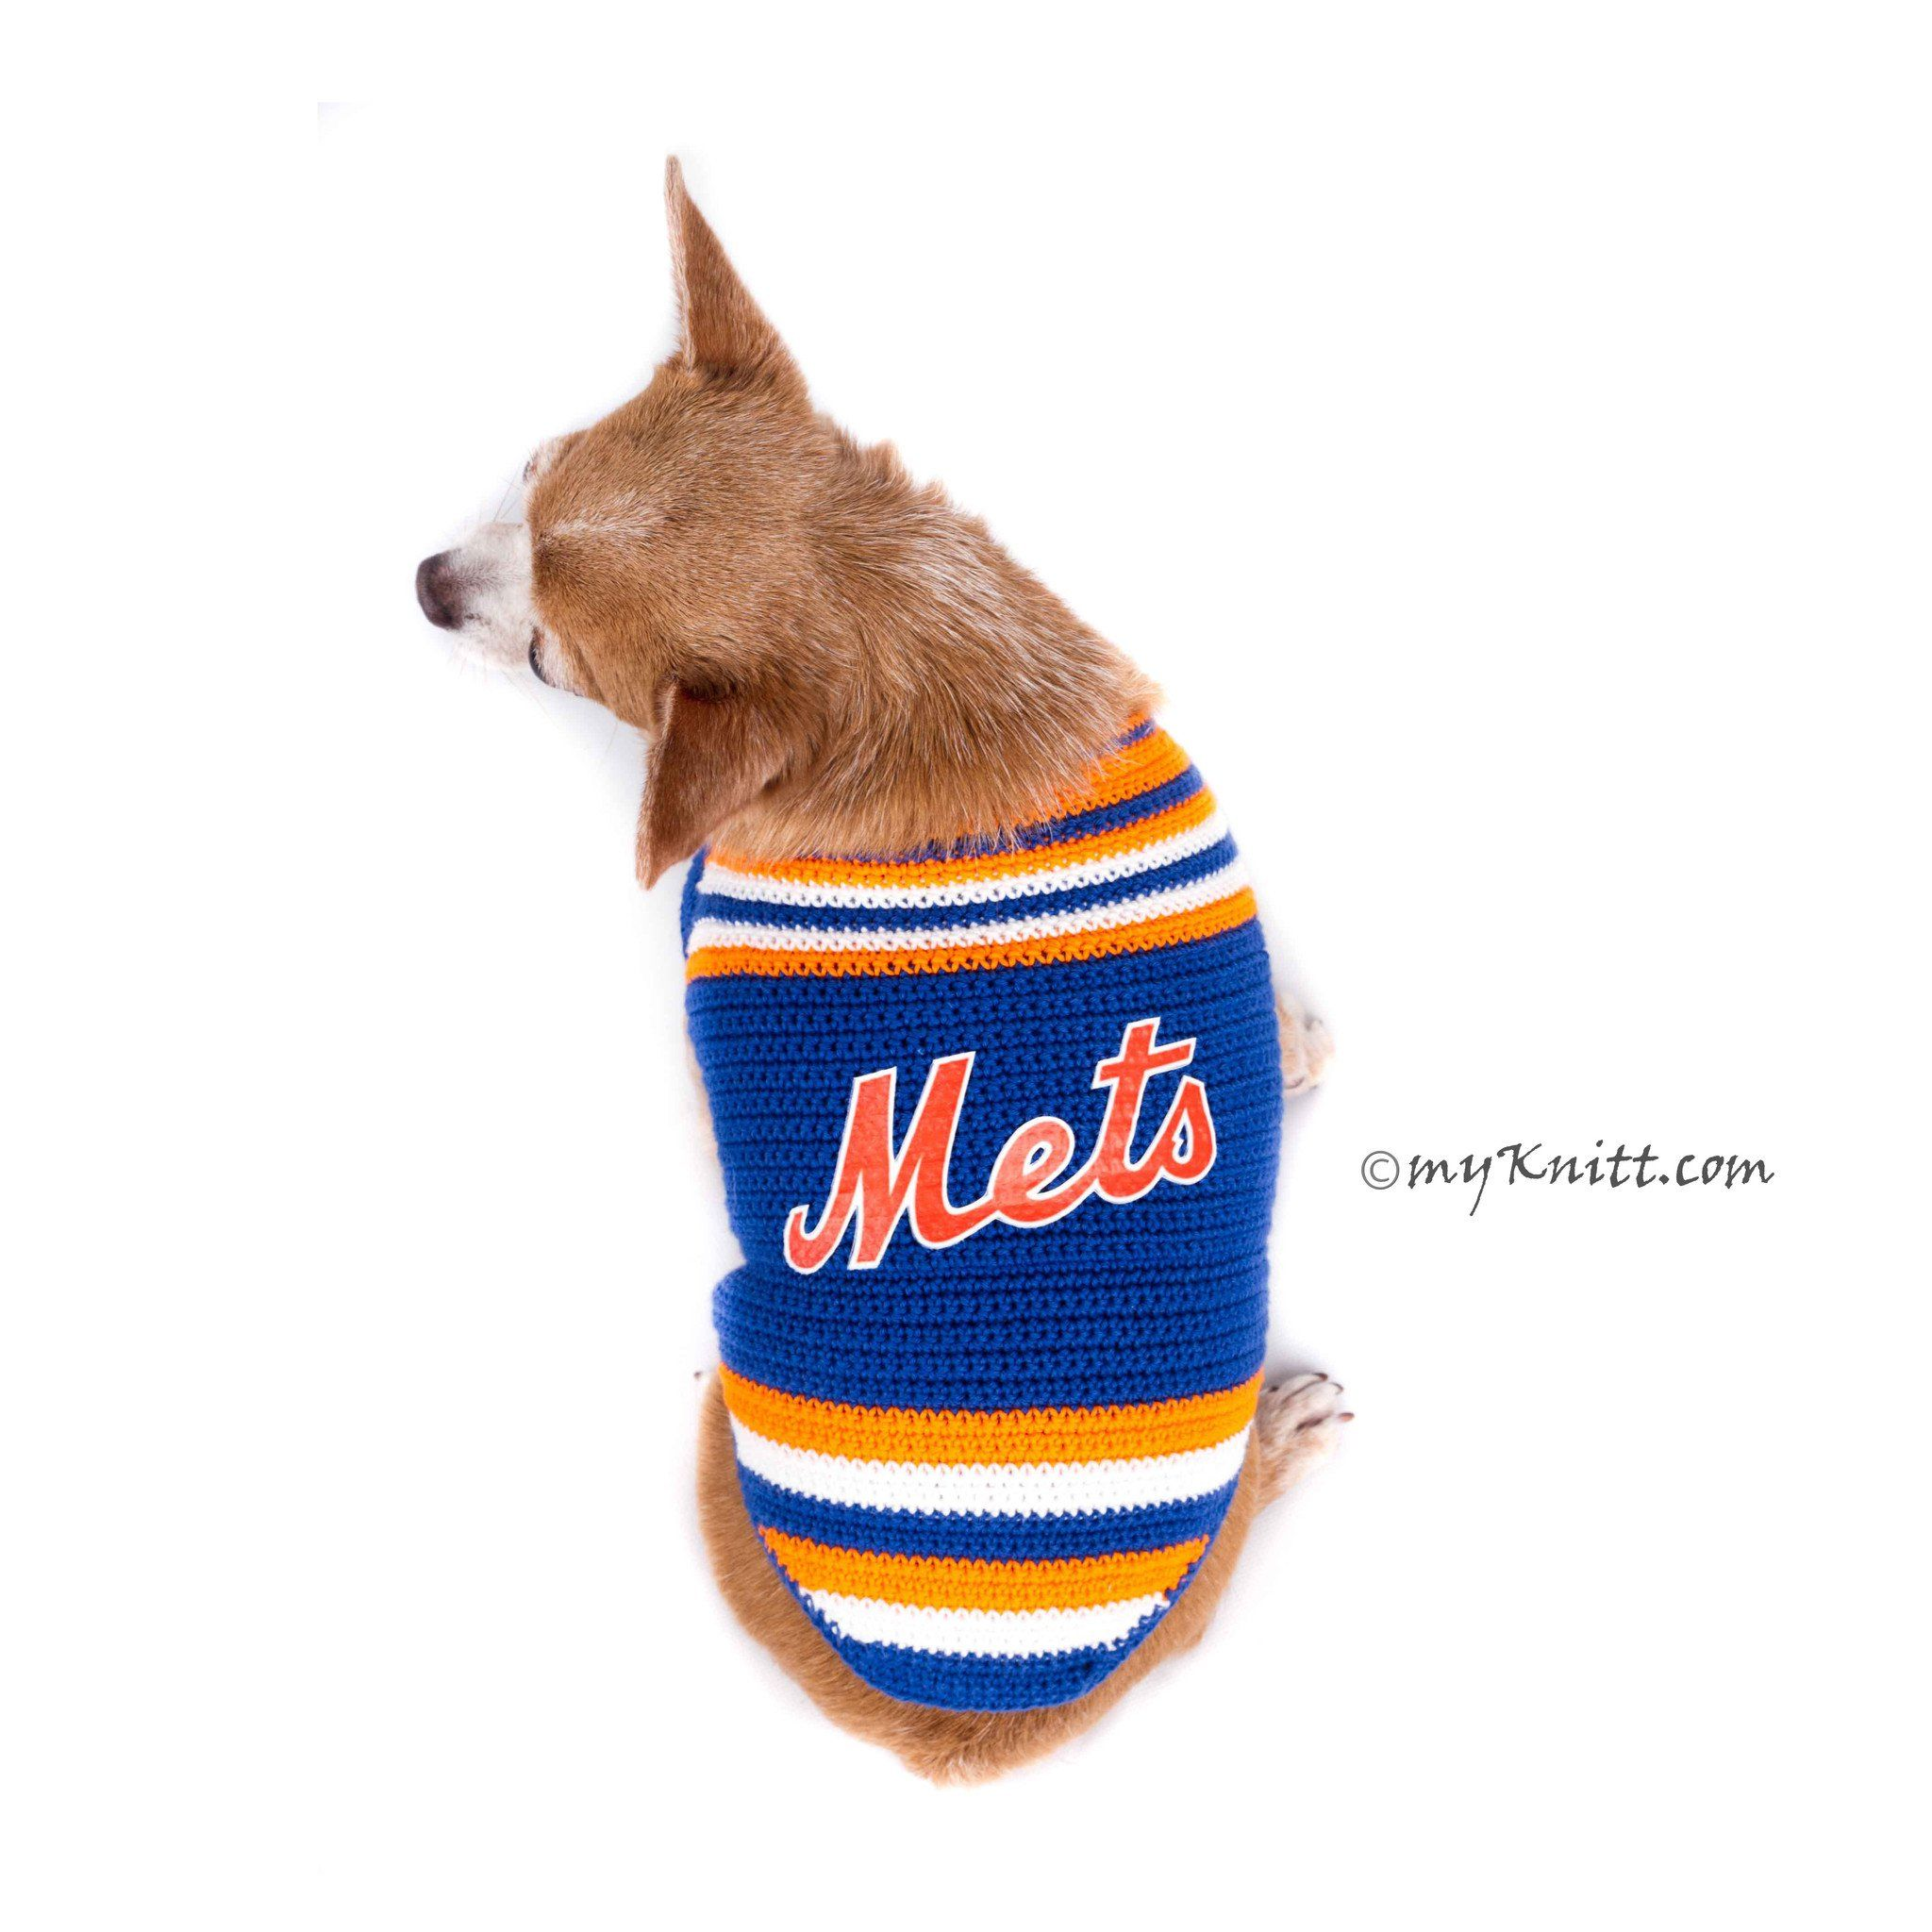 buy online e0c84 33812 New York Mets Dog Jersey MLB Baseball Pet Jersey DK778 by ...